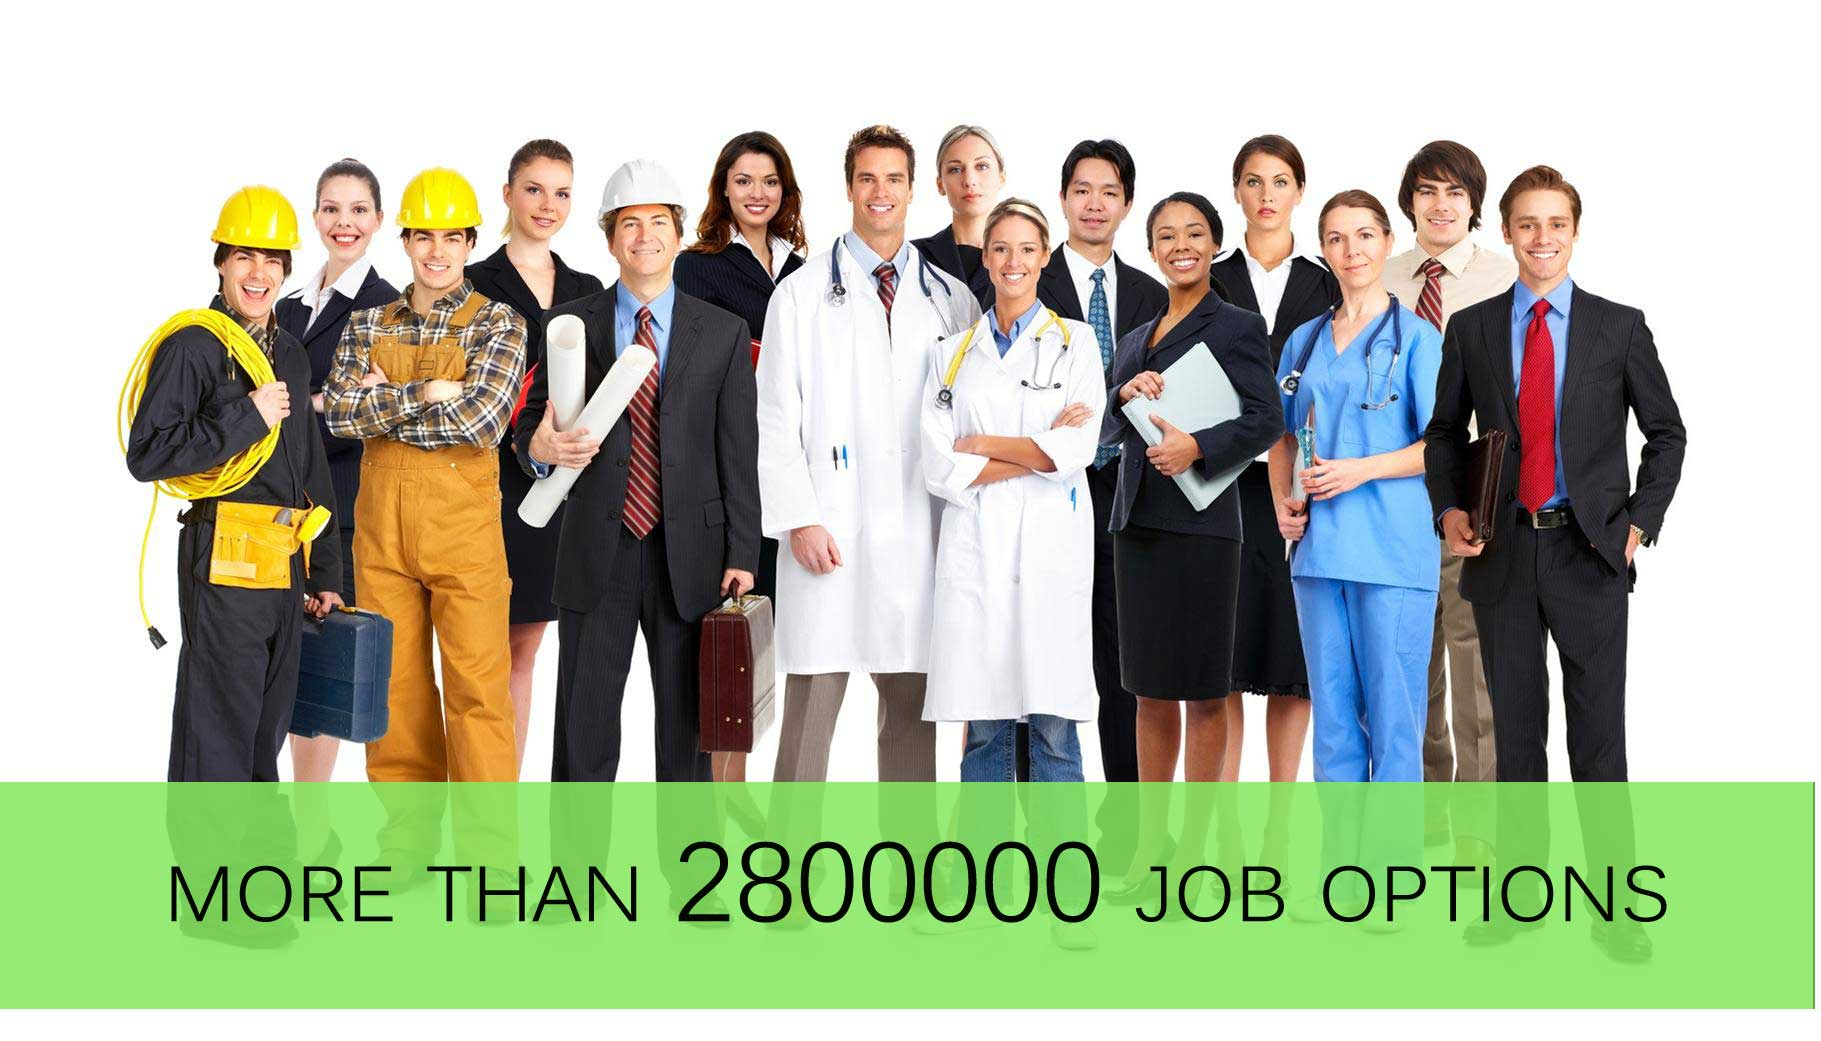 The only job portal which gives more than 2800000 job options ...